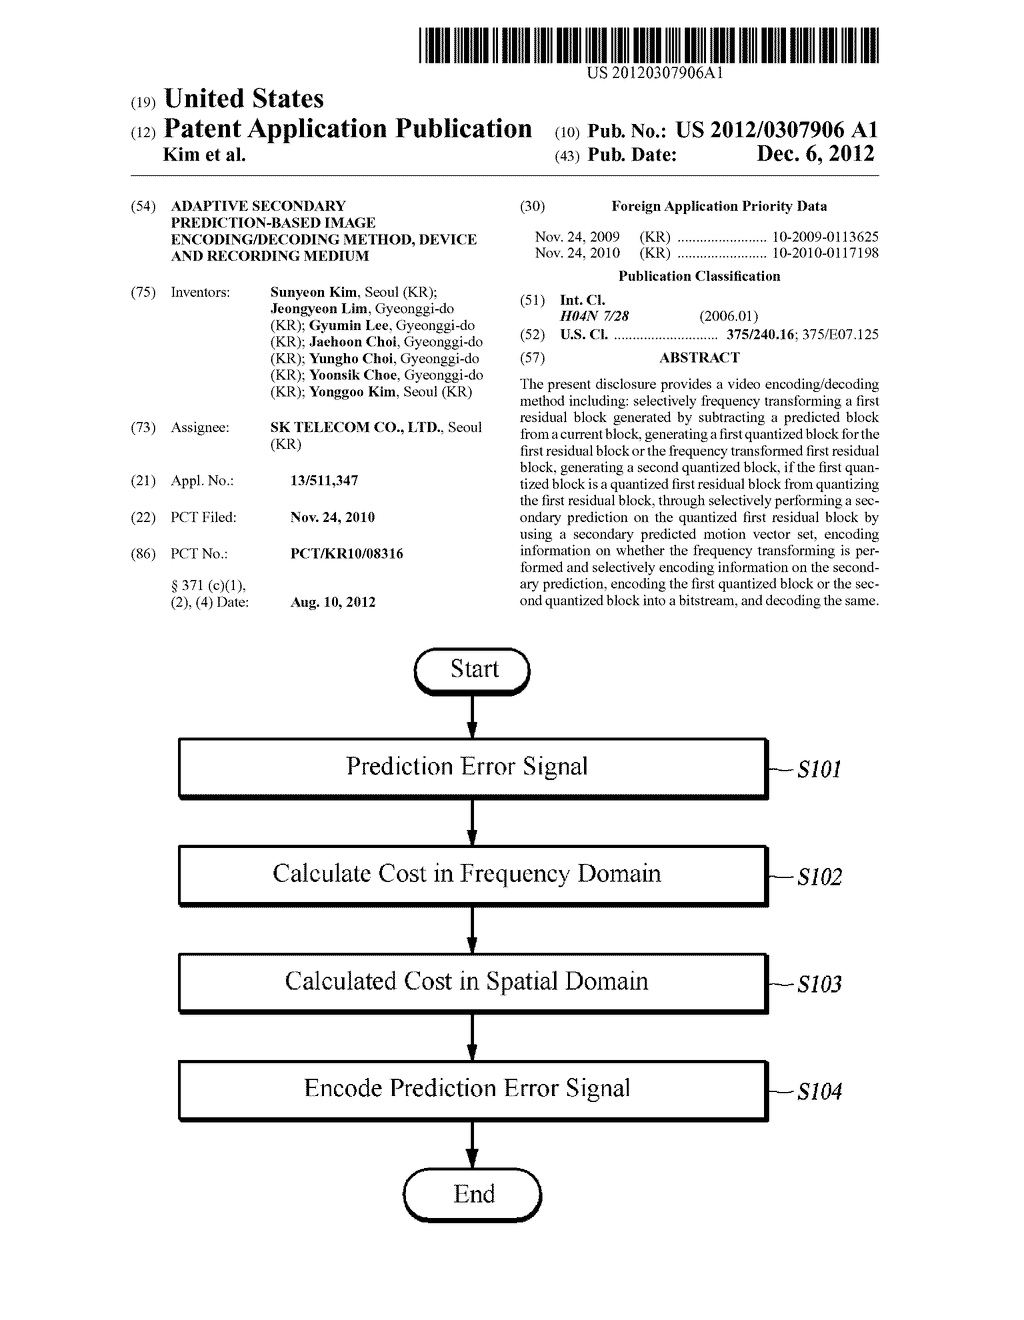 ADAPTIVE SECONDARY PREDICTION-BASED IMAGE ENCODING/DECODING METHOD, DEVICE     AND RECORDING MEDIUM - diagram, schematic, and image 01